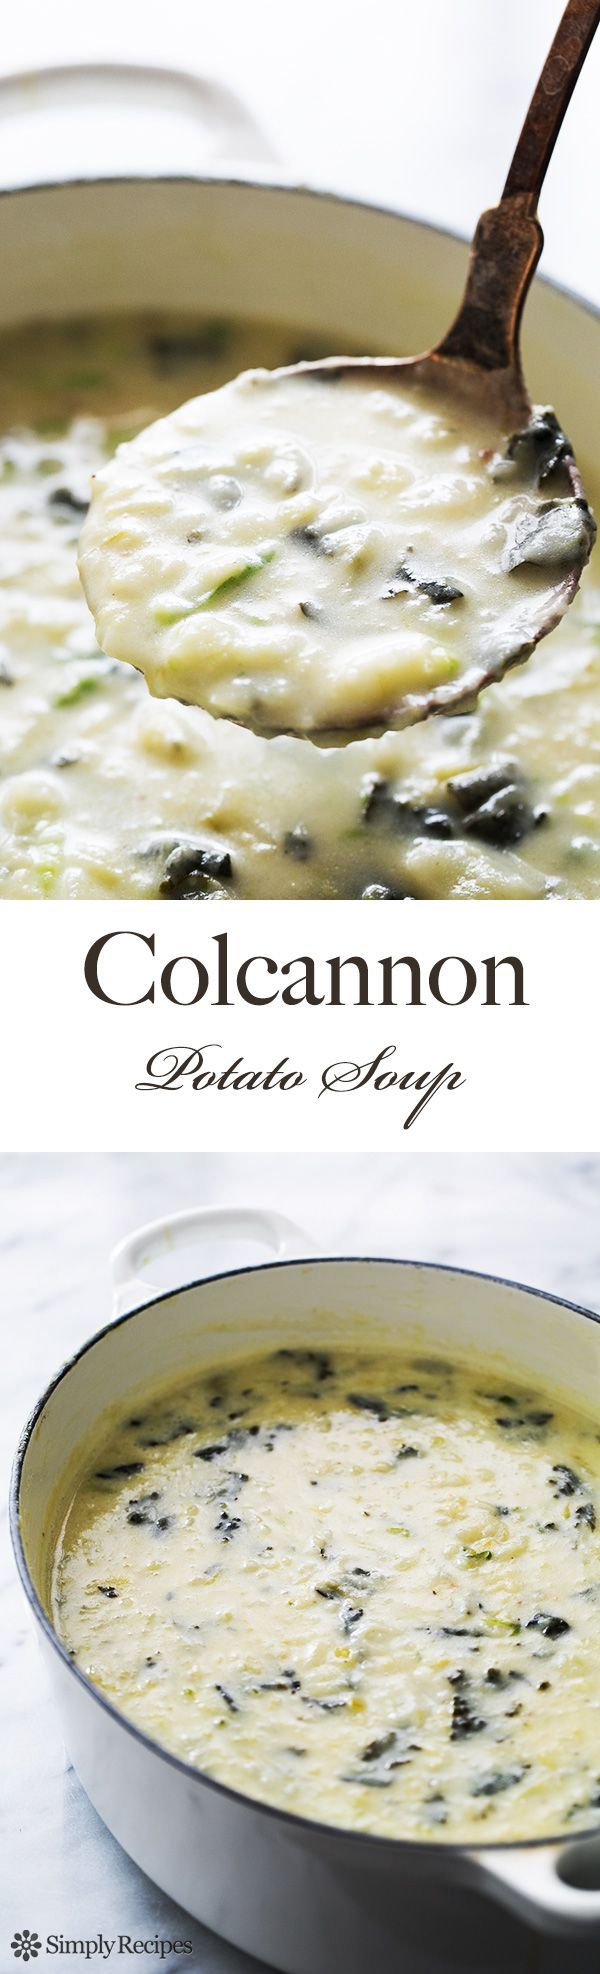 Hearty Colcannon Potato Soup! Like Irish colcannon, but in soup form. With russet potatoes, cabbage, kale, stock, and cream. This soup will keep you warm on a cold winter day. And it's so easy to make! #glutenfree